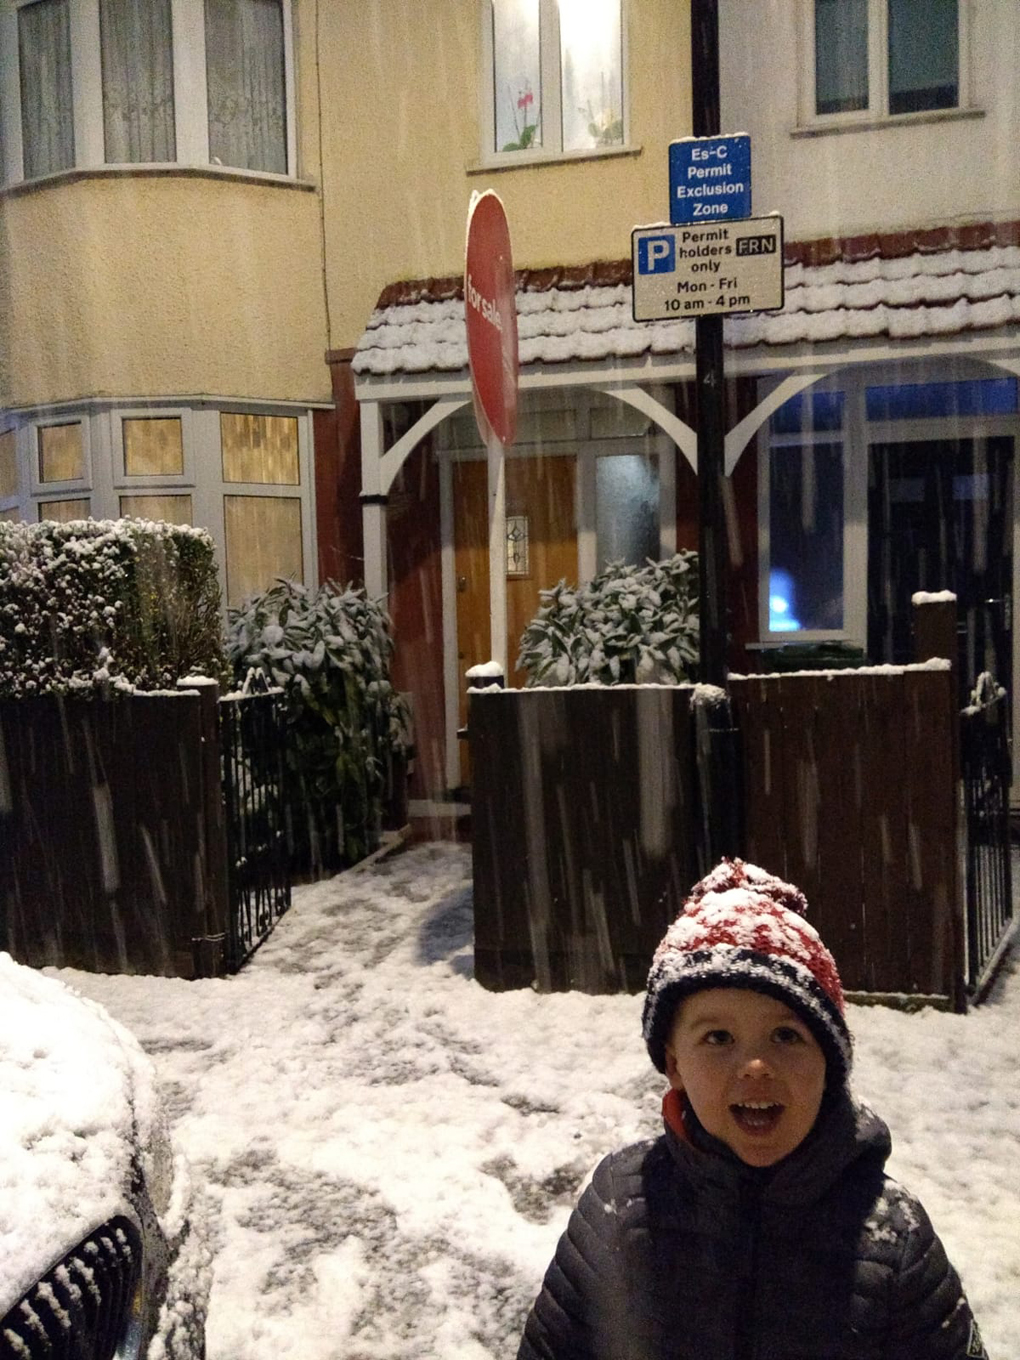 child outside a house in a snowy London street